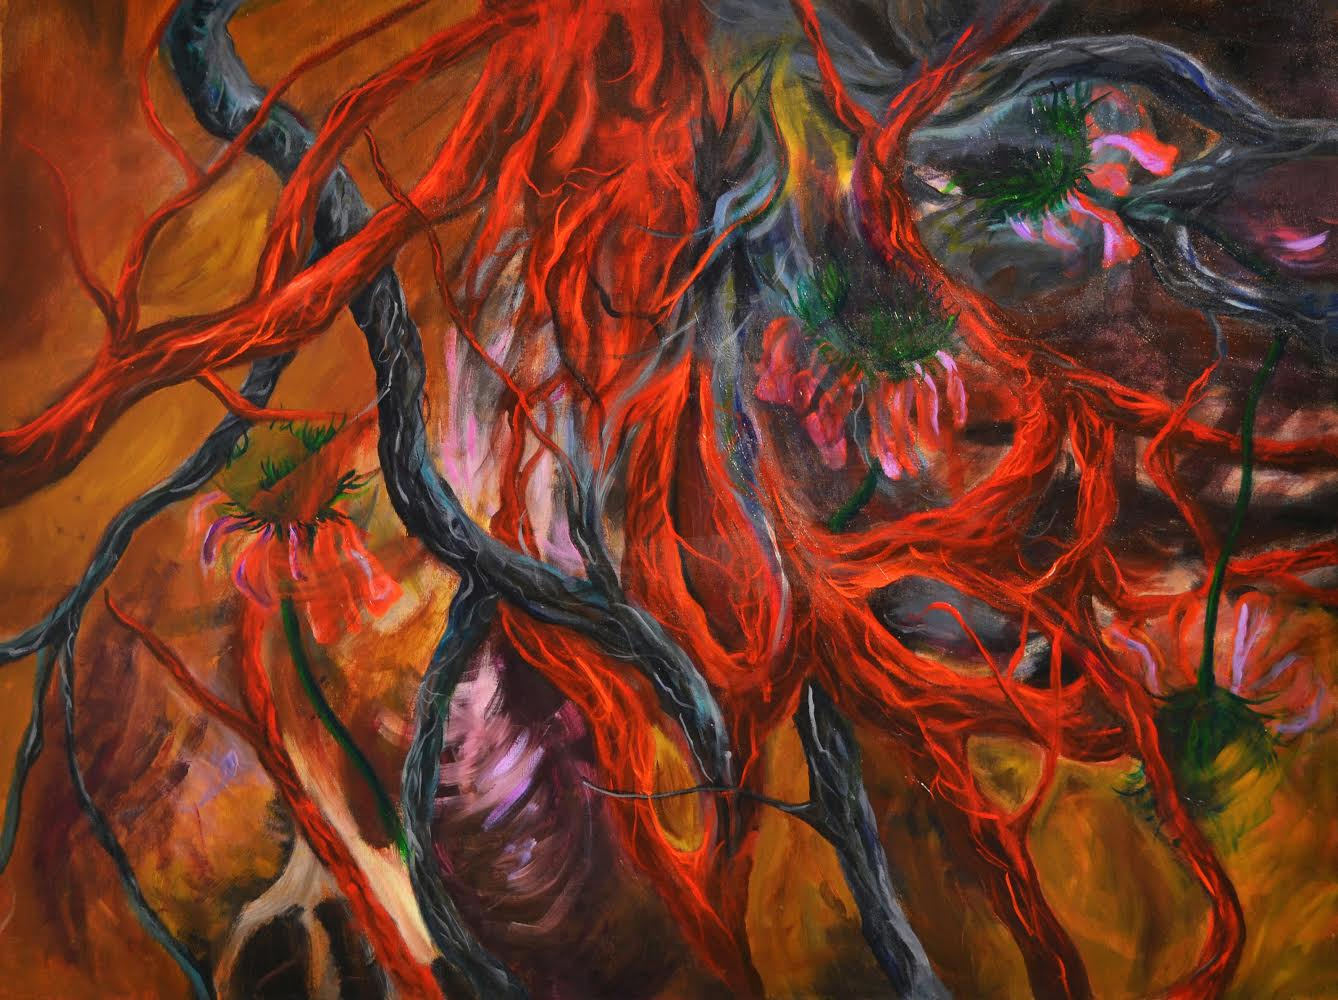 This is a piece focused on nature. The image is based on fiery colours: dark oranges and reds. The top right hand corner is darker and it is here where the roots begin—thick, black strands streaking and curling their way around the canvas. There are also flower buds in the top right hand corner, black like the roots, with some green coming out of them—the beginnings of growth. There are dark orange ones roots as well, snaking their way around the image. The focus of this image is colour—the image is enticing with its warmth and richness—the background is a multitude of yellows and golds and purples.